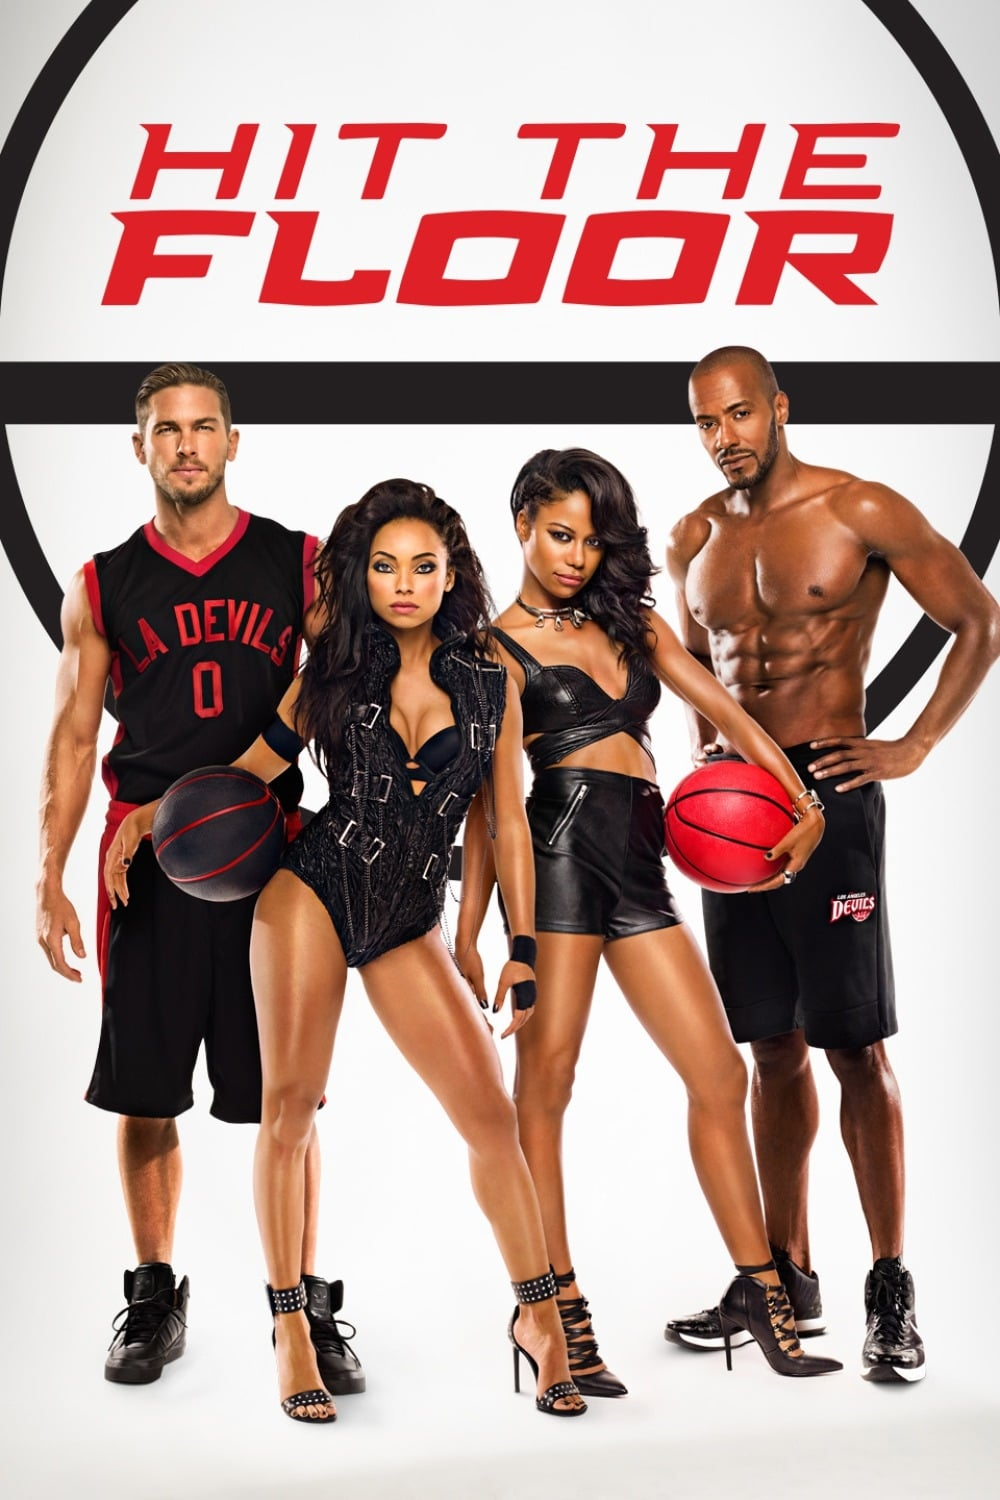 image for Hit the Floor